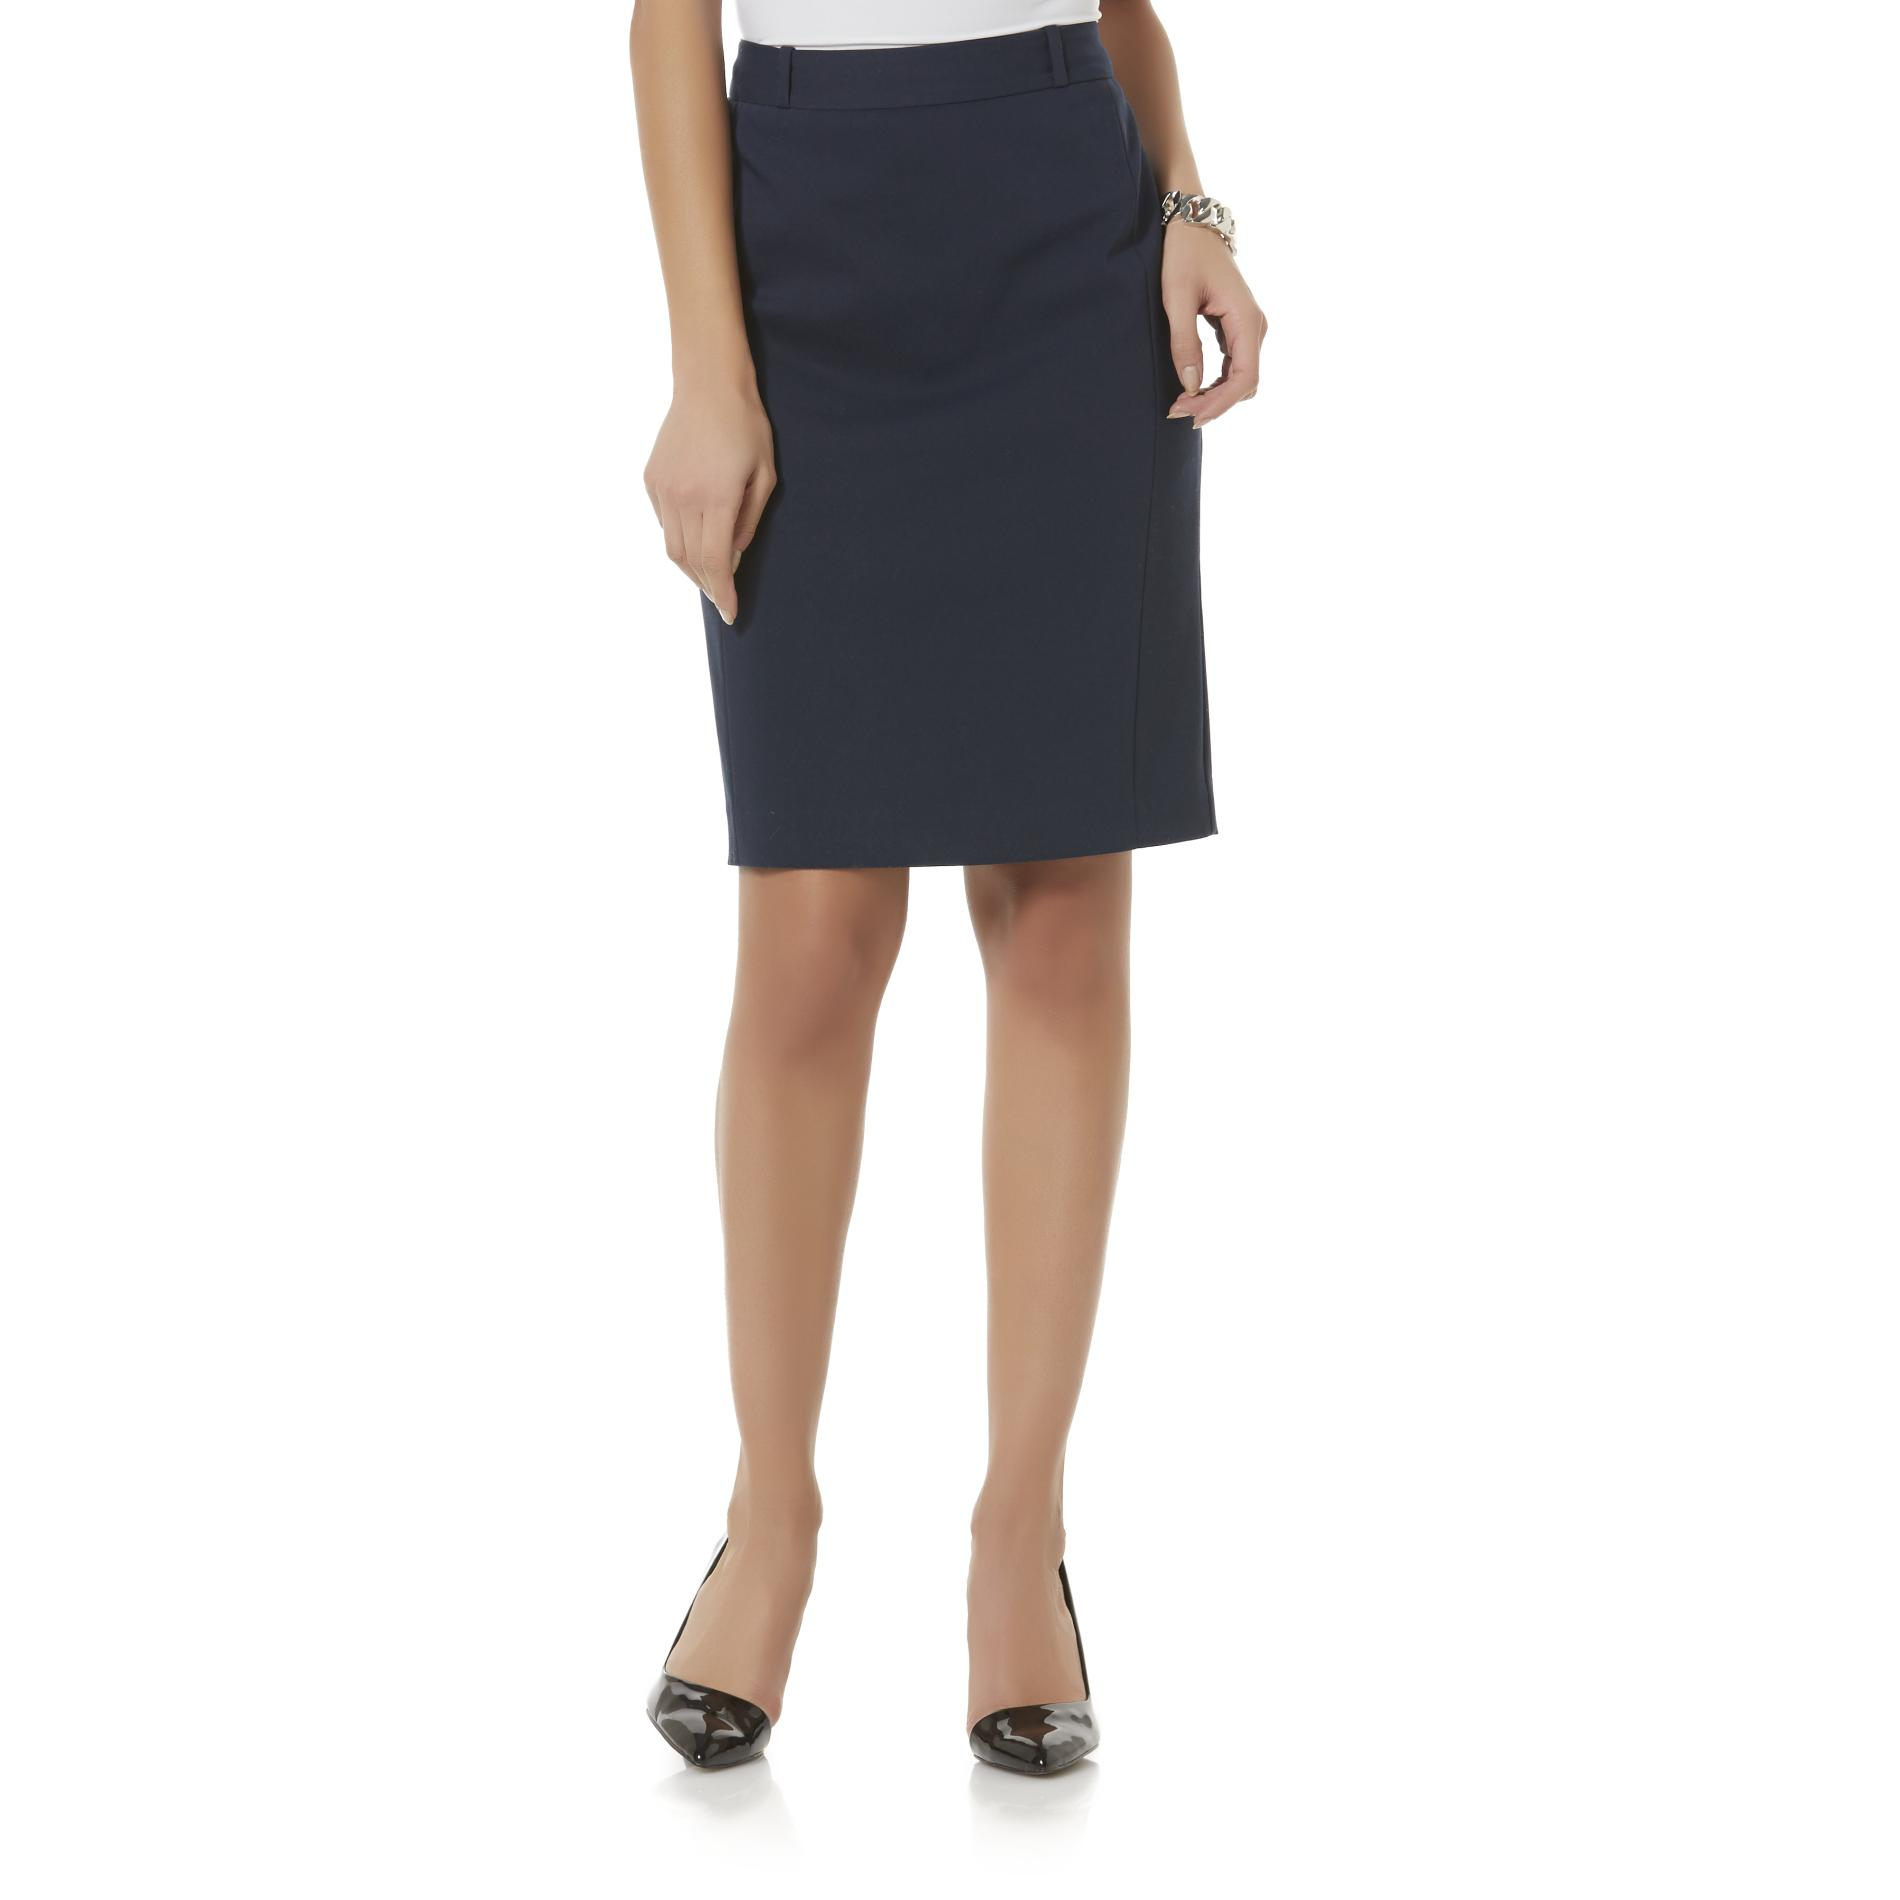 School Skirts Kmart Covington Women 39s Pencil Skirt Sears